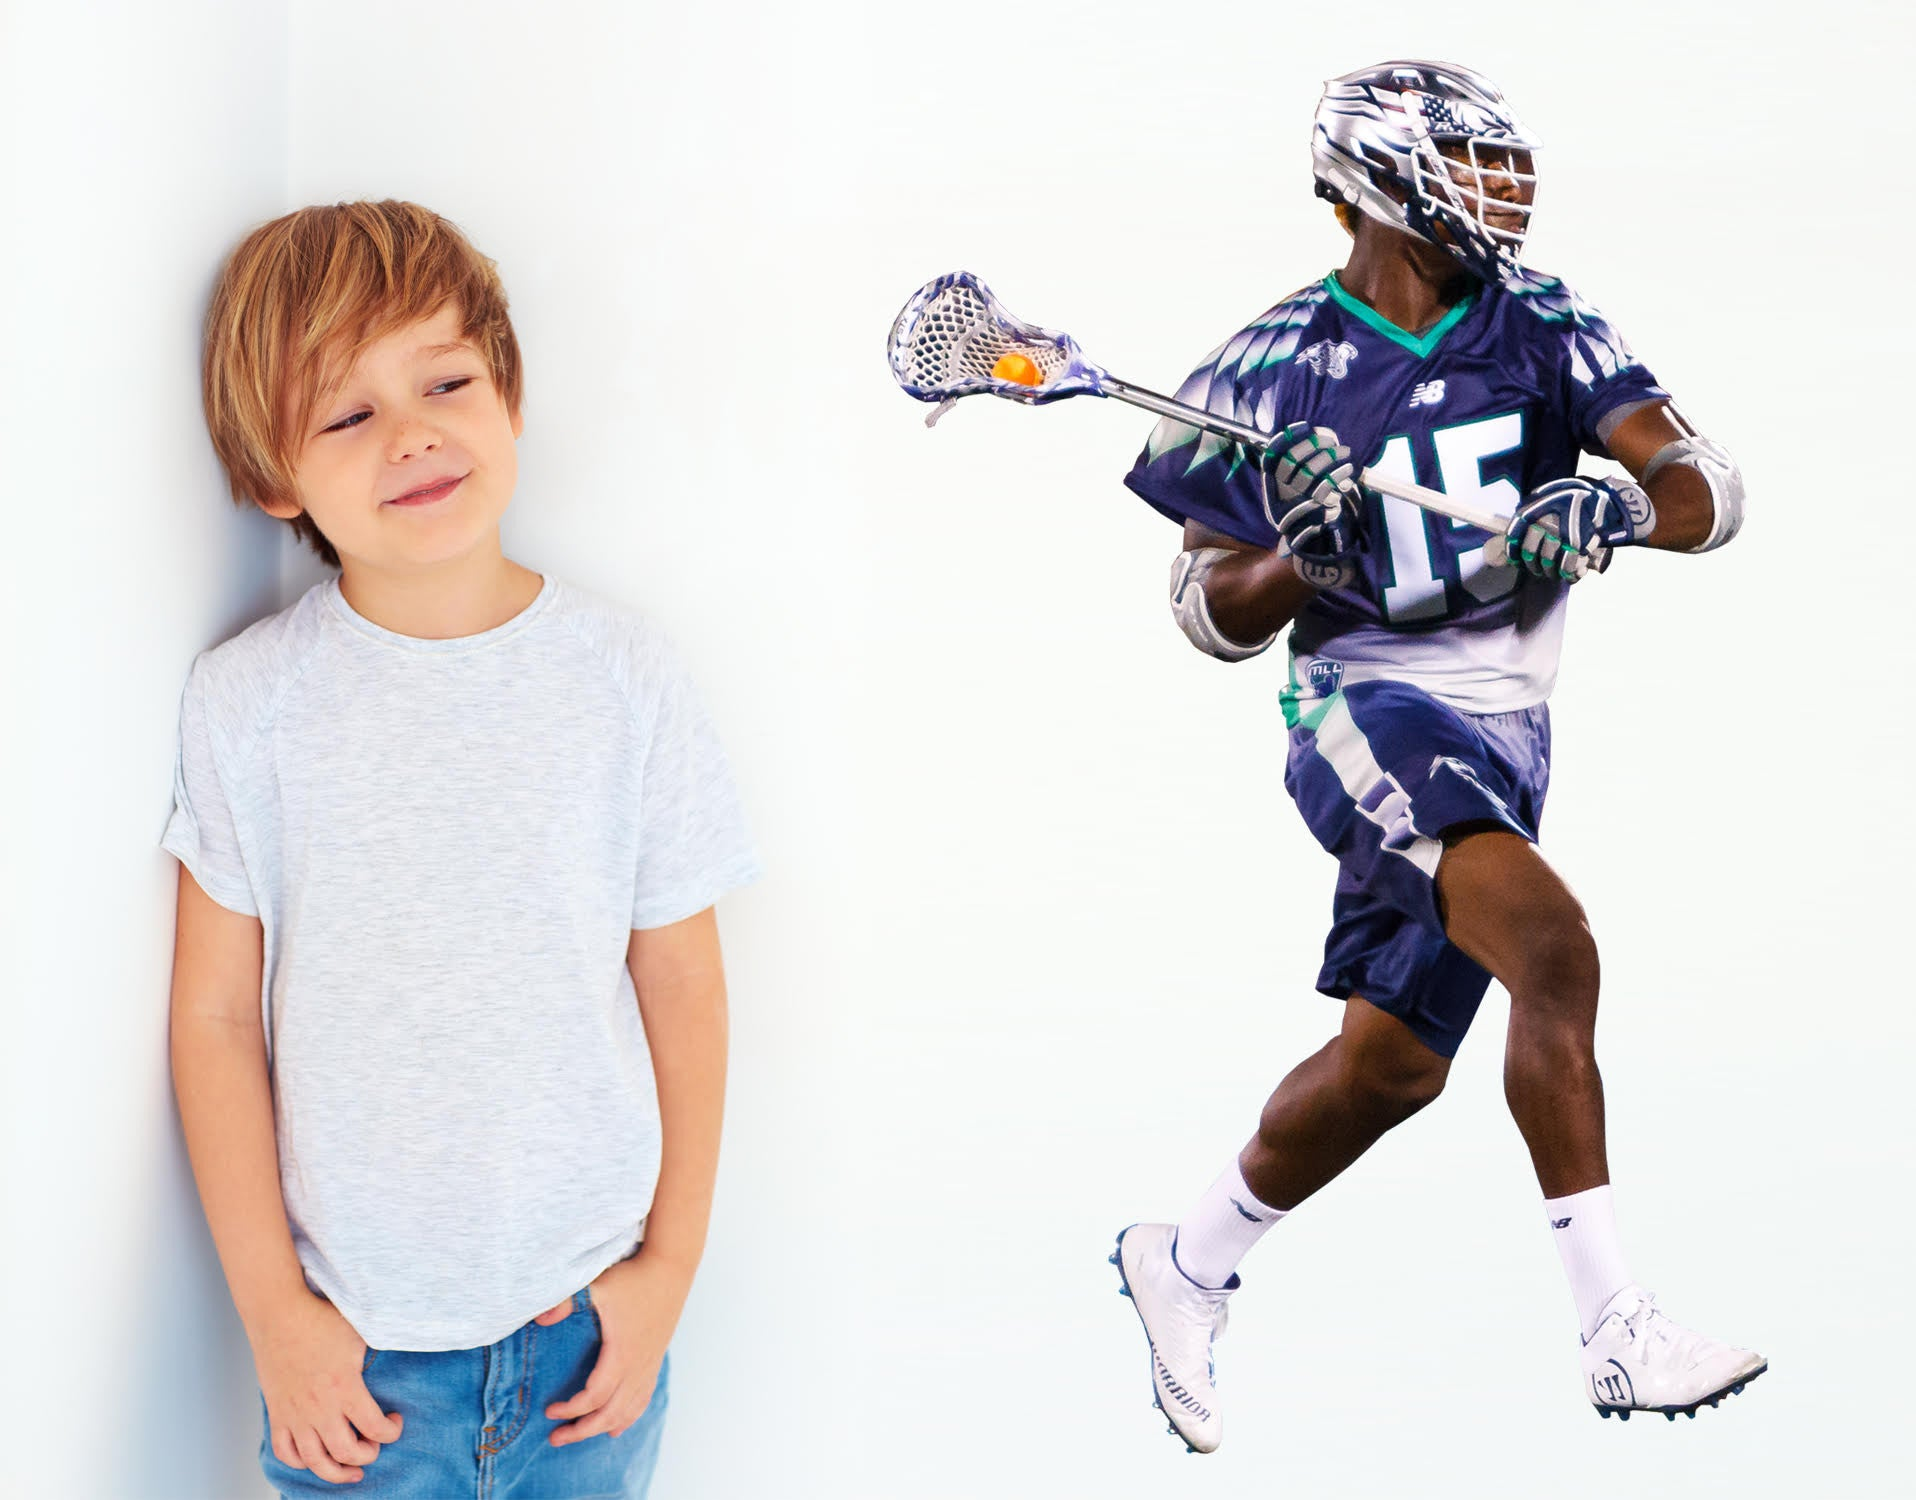 Chesapeake Bayhawks Myles Jones 3'4 high smaller life size wall decal